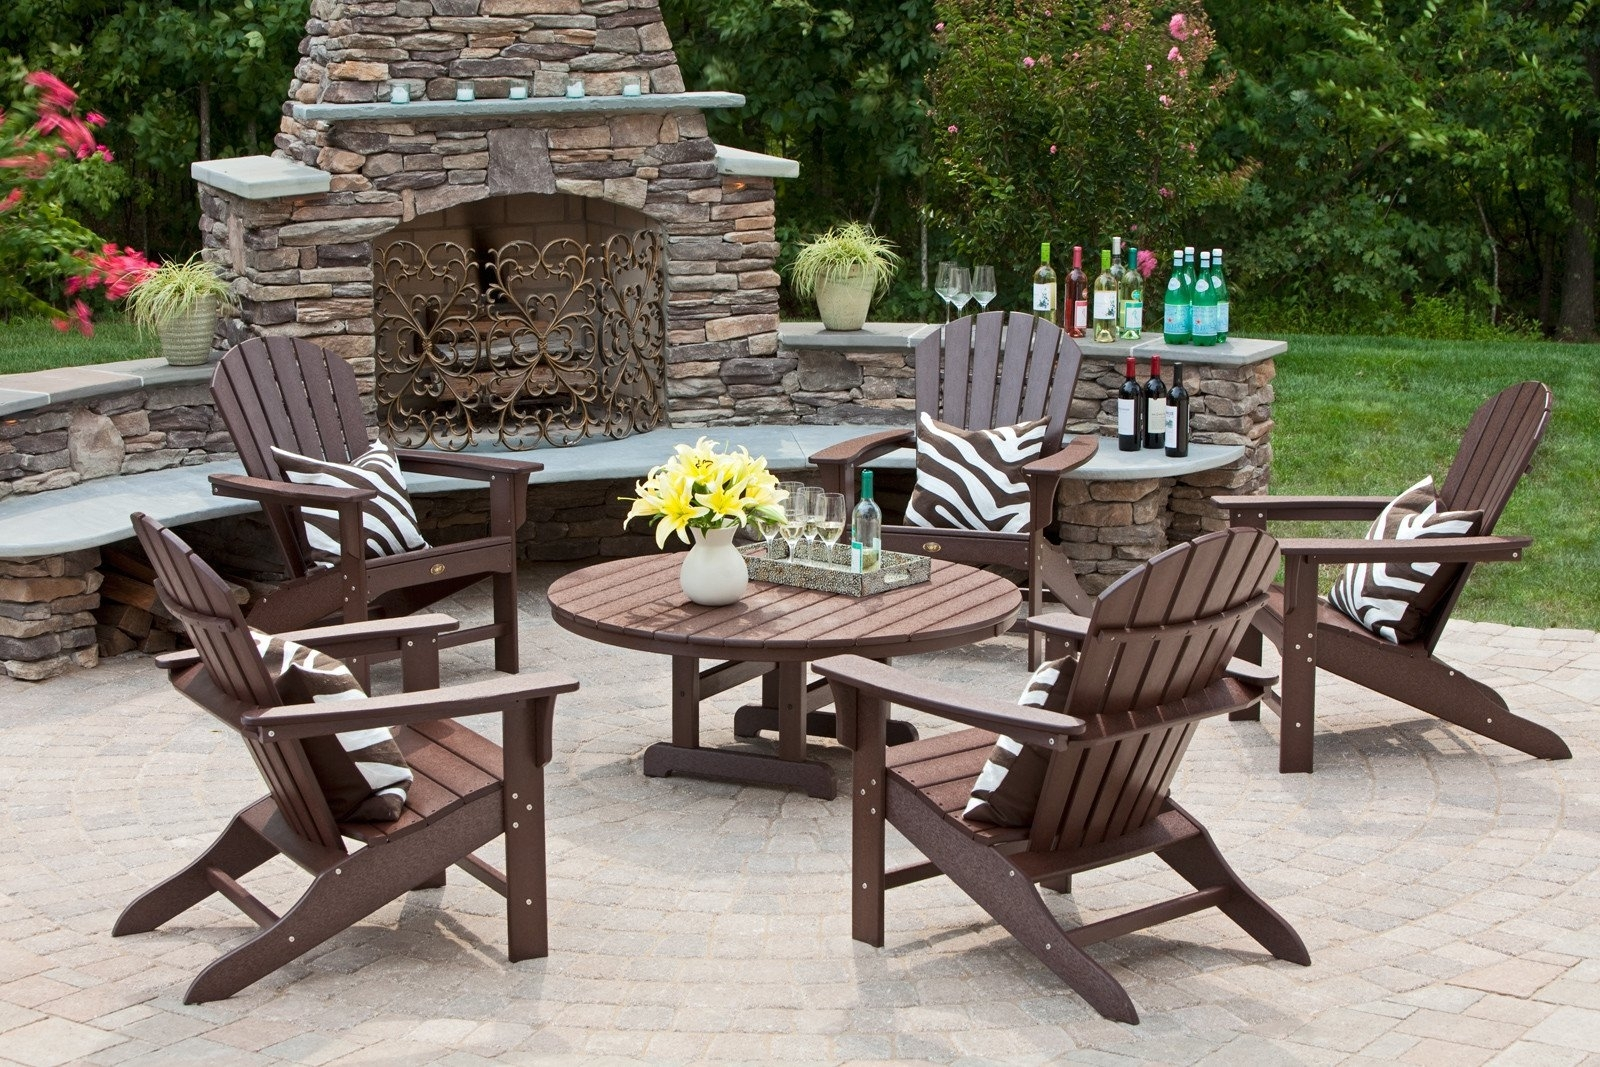 Patio : Patio Stones Onriture And Easy Conversation Sets Clearance With Regard To Well Liked Sears Patio Furniture Conversation Sets (View 4 of 15)